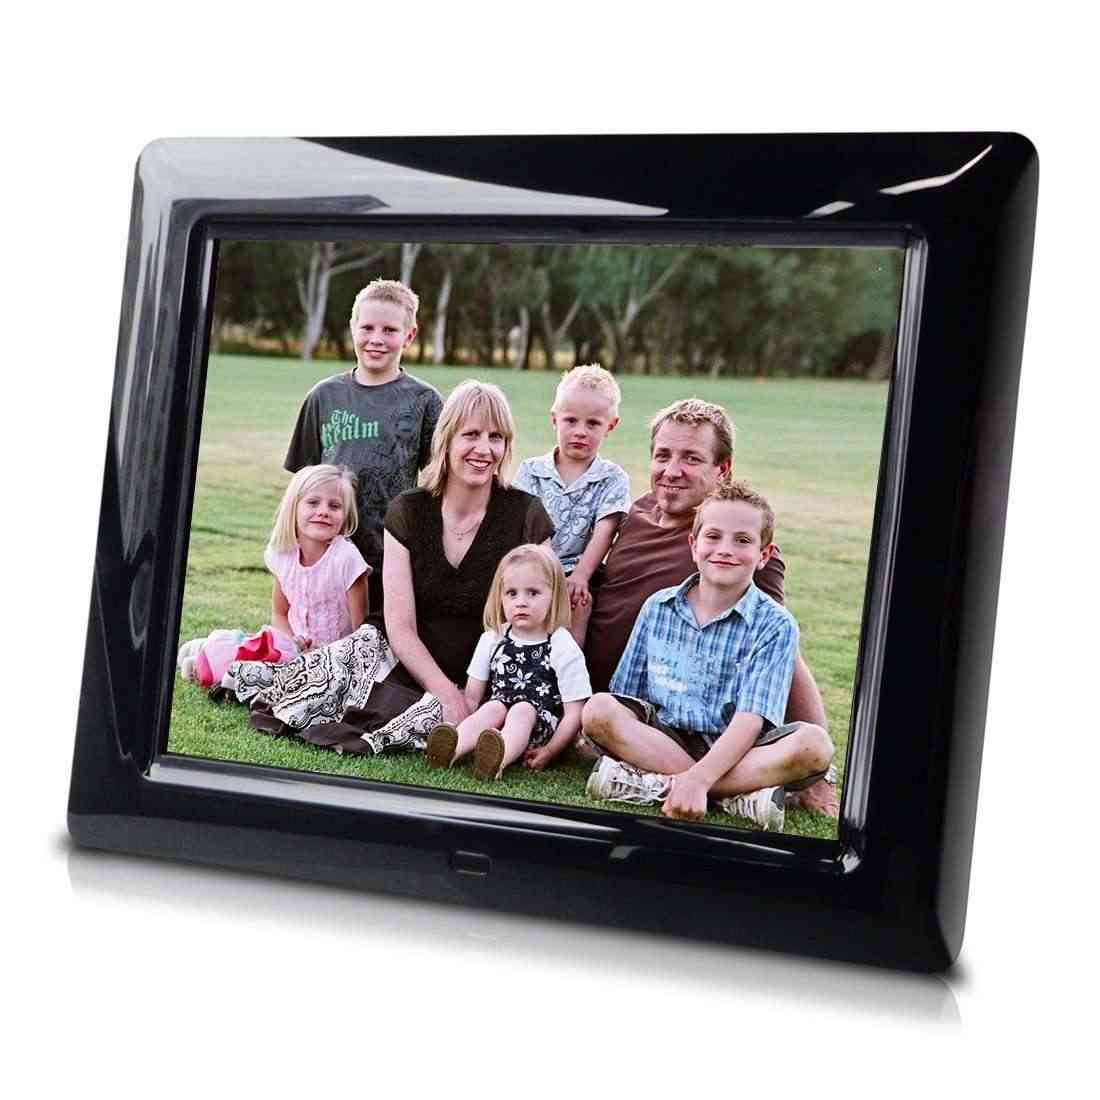 digital-picture-frame-for-mother's-day-gift-guide-teachworkoutlove.com